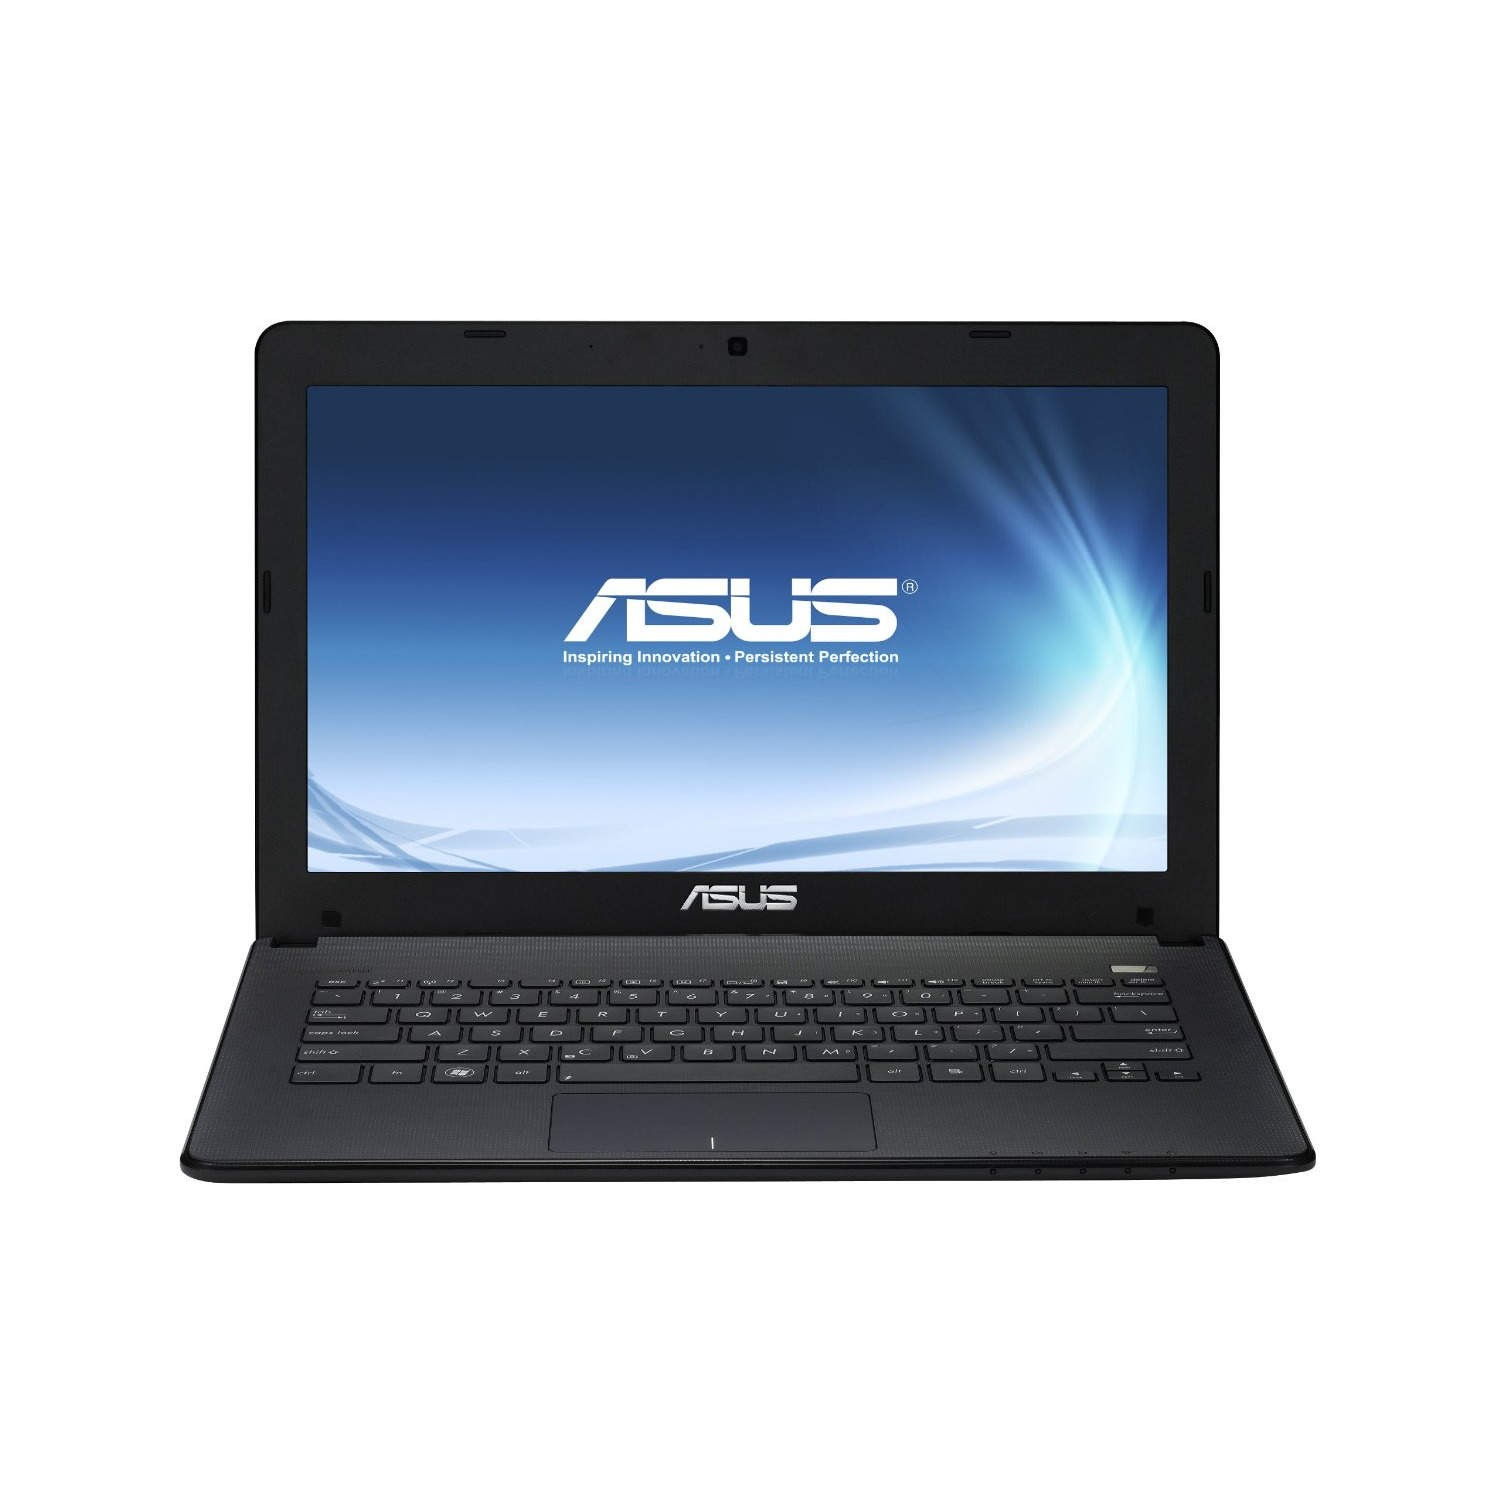 ASUS X301A USB 3.0 DRIVERS FOR PC